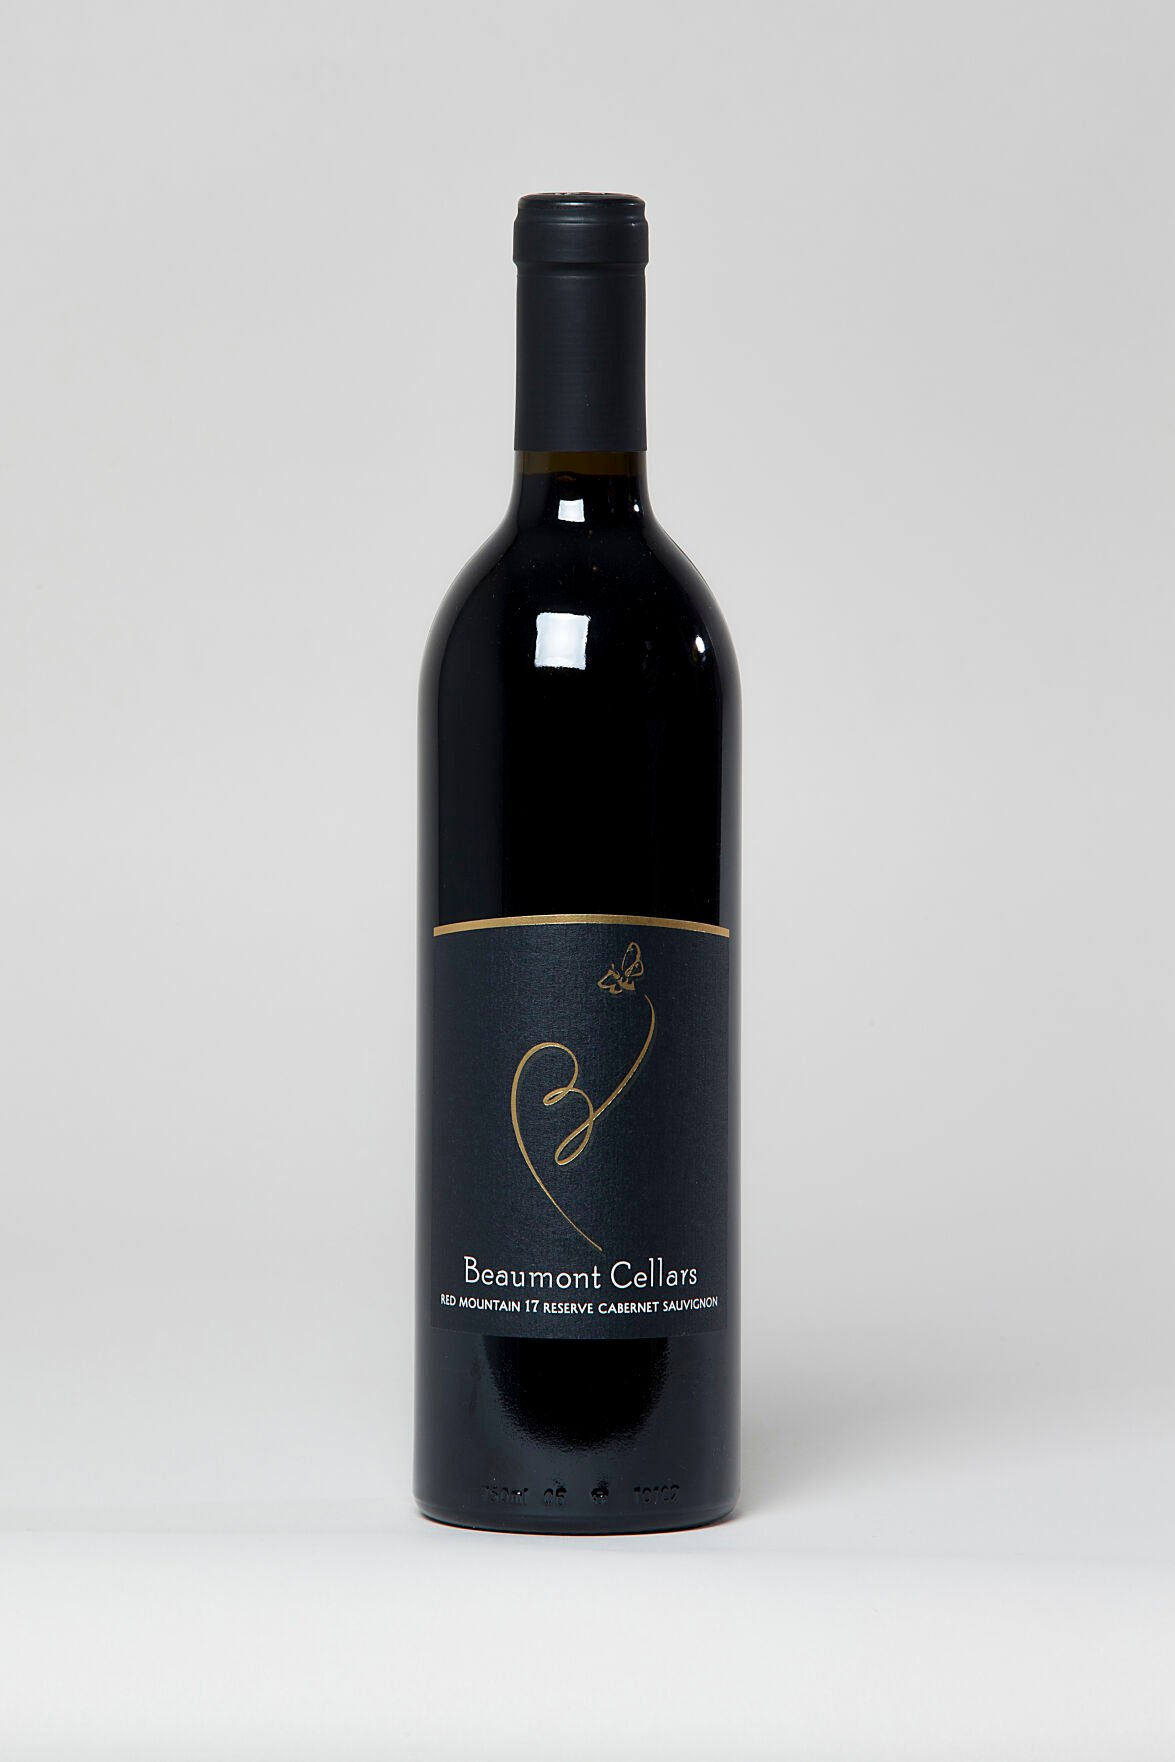 21_Beaumont Cellars_Red Mountain Reserve Cab_2017.jpg